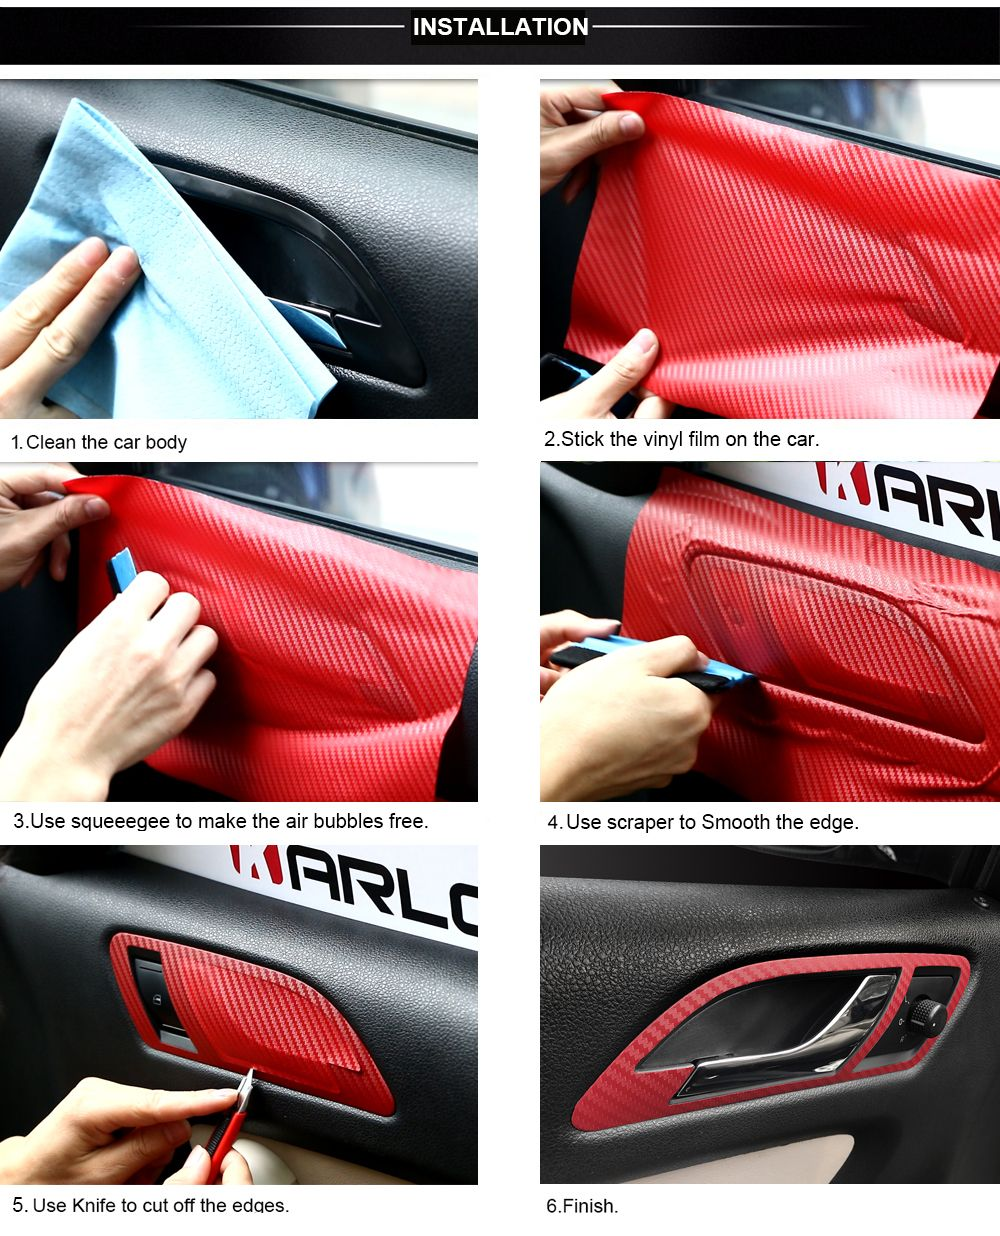 5x Audi Ring Sticker for leather seats and other flat and smooth surfaces